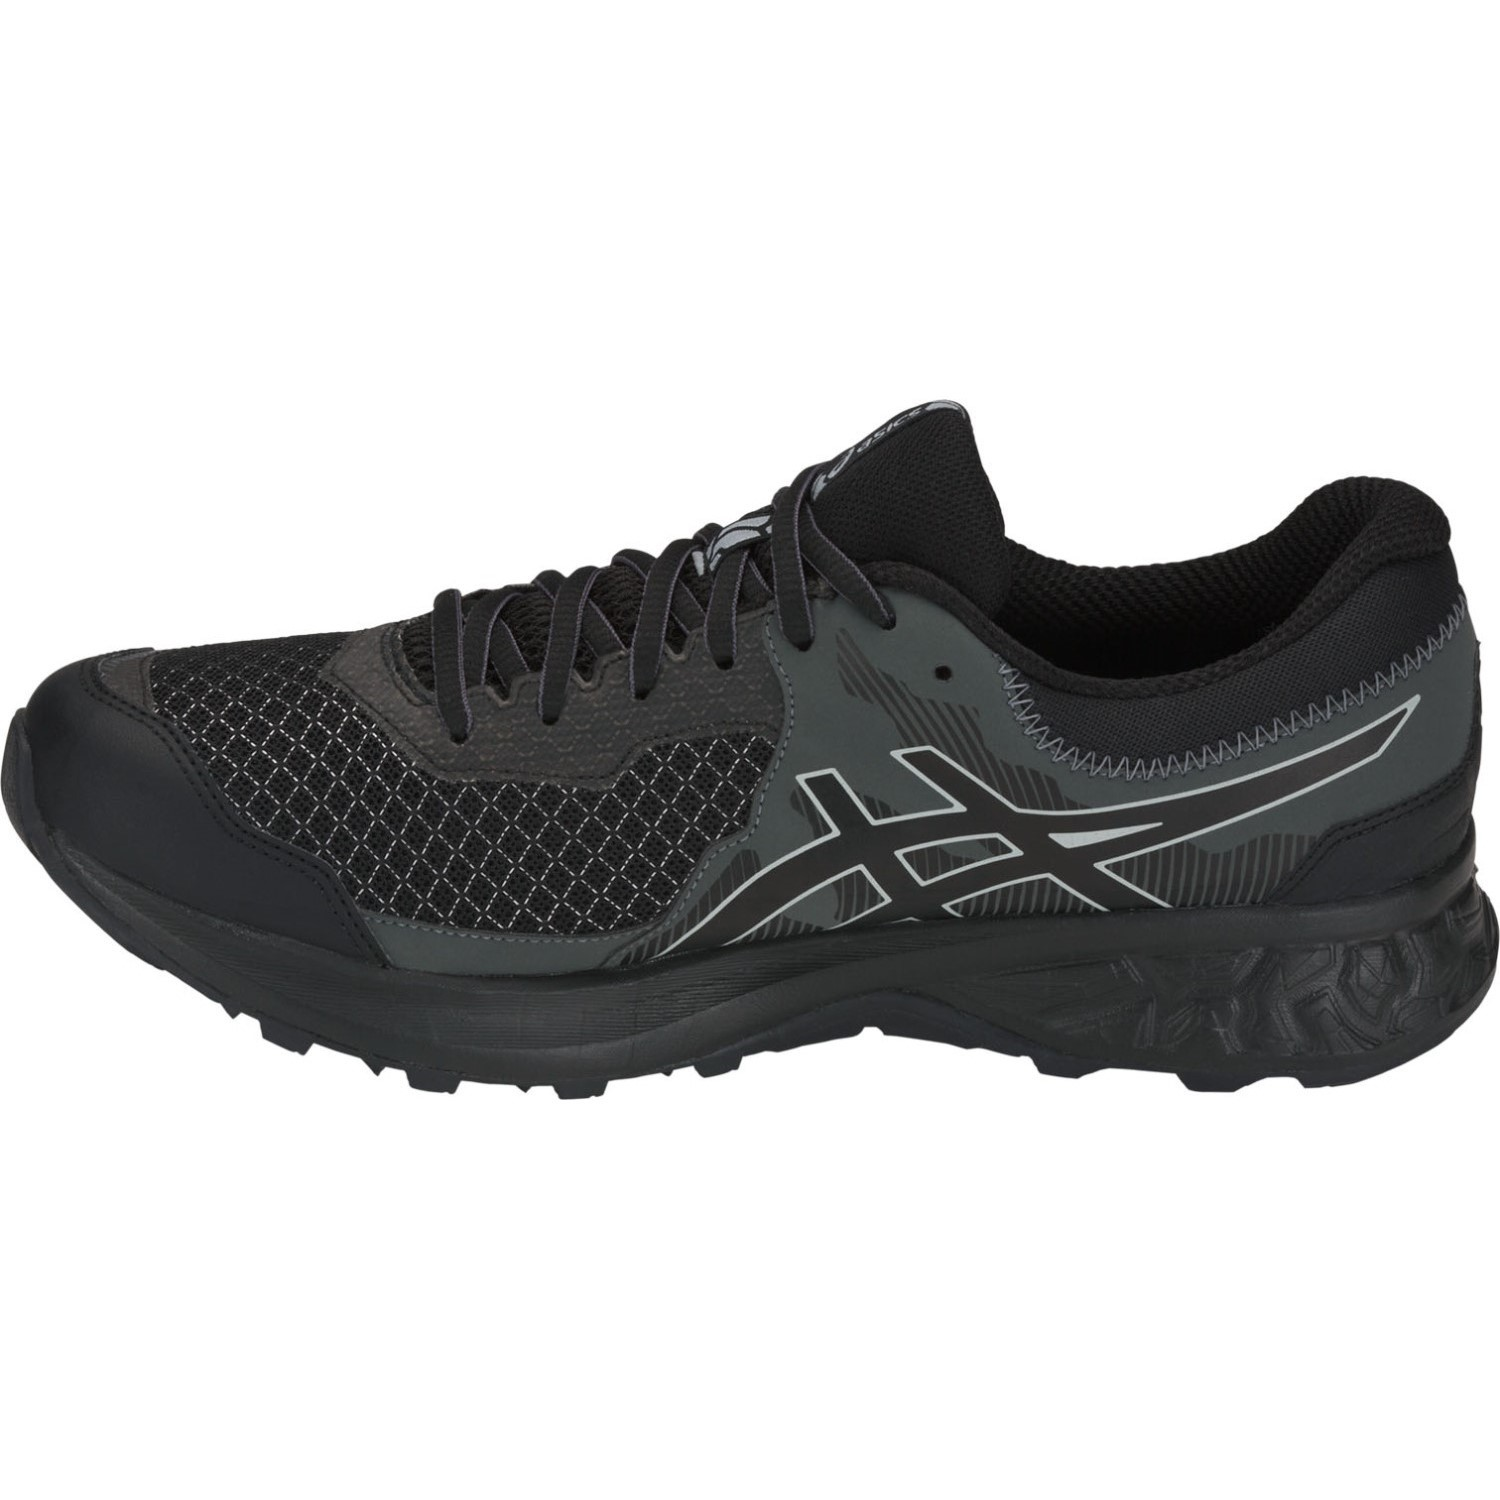 the latest fadb7 3977d Asics Gel Sonoma 4 GTX - Mens Trail Running Shoes - Black/Stone Grey ...